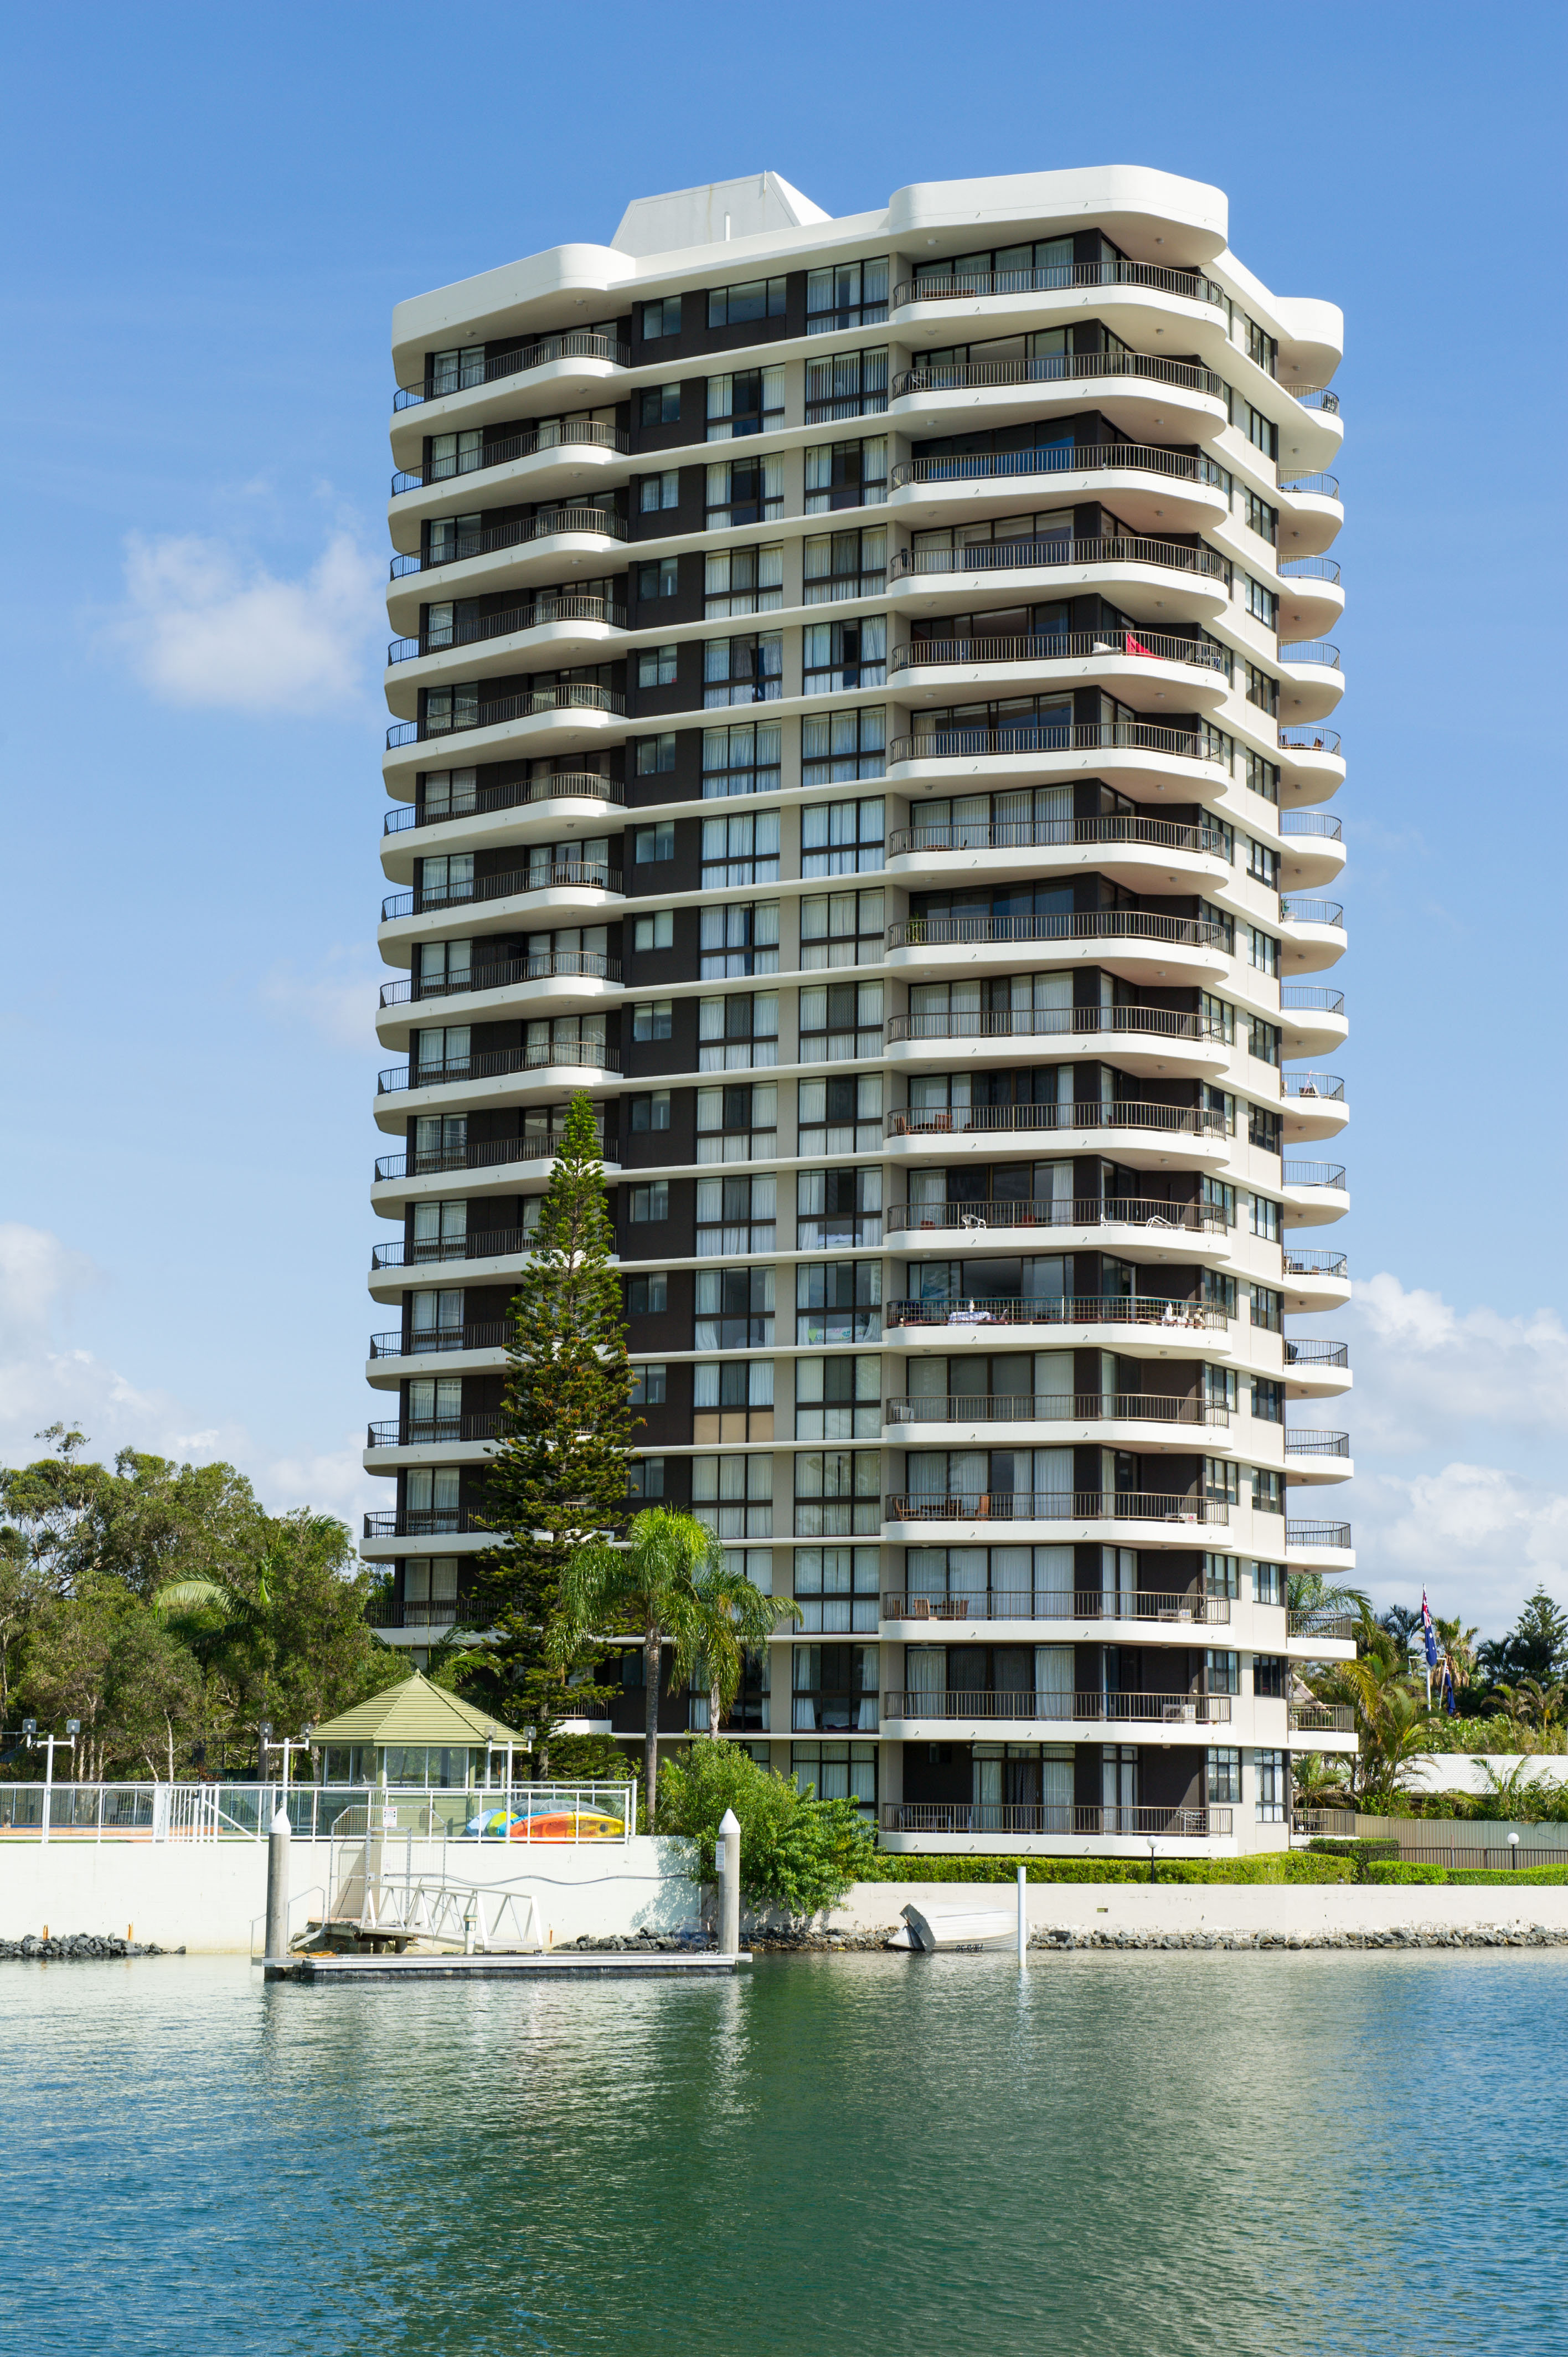 broadwater shores building